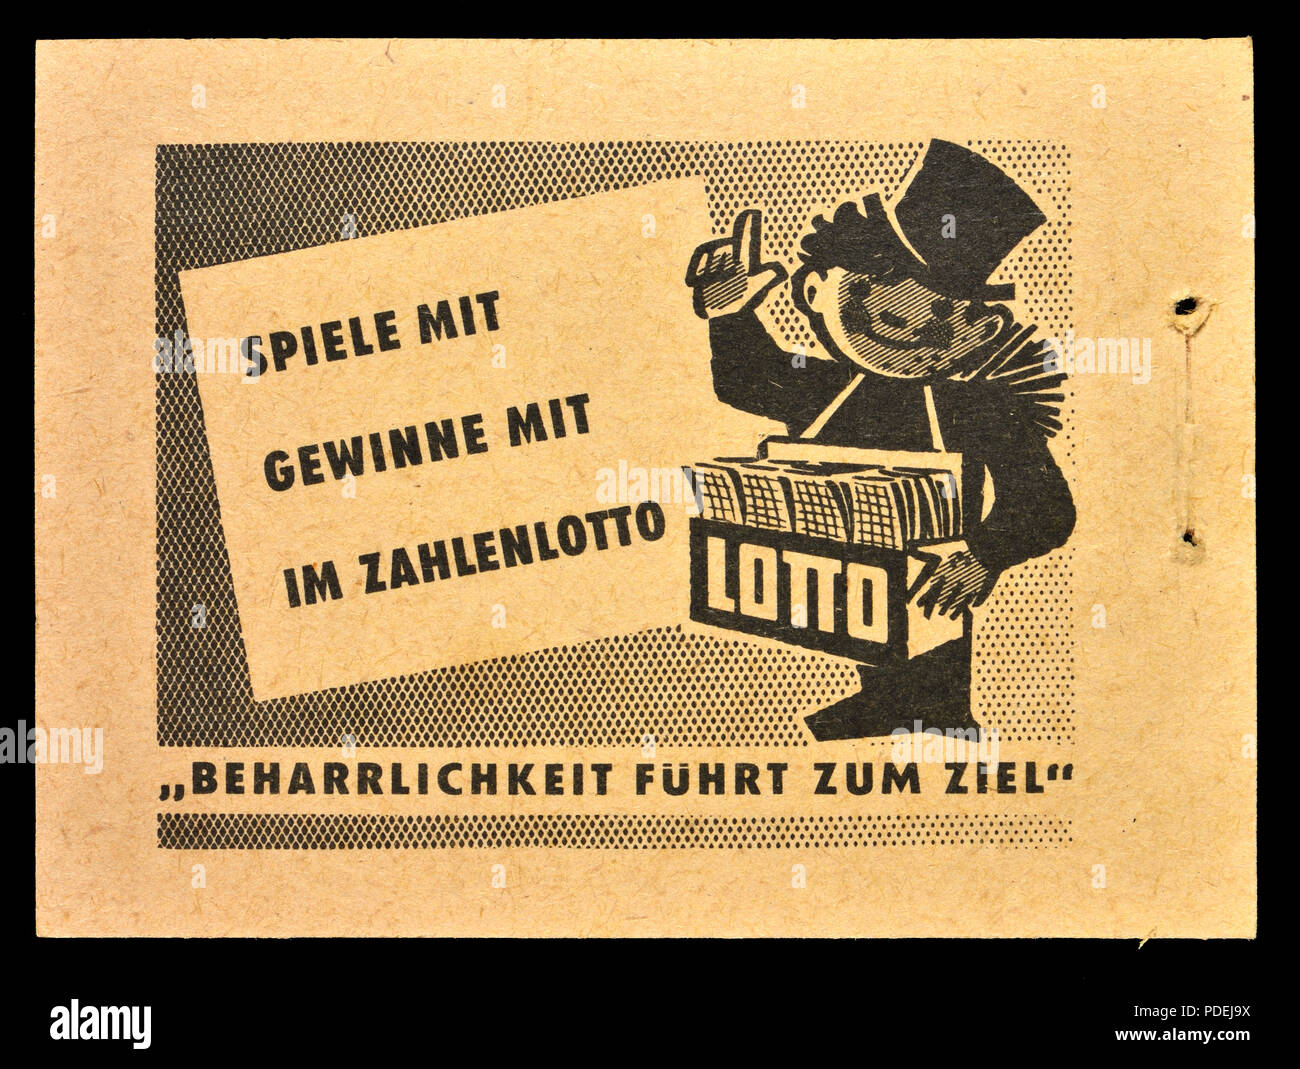 german-advert-from-a-1950s-east-german-s